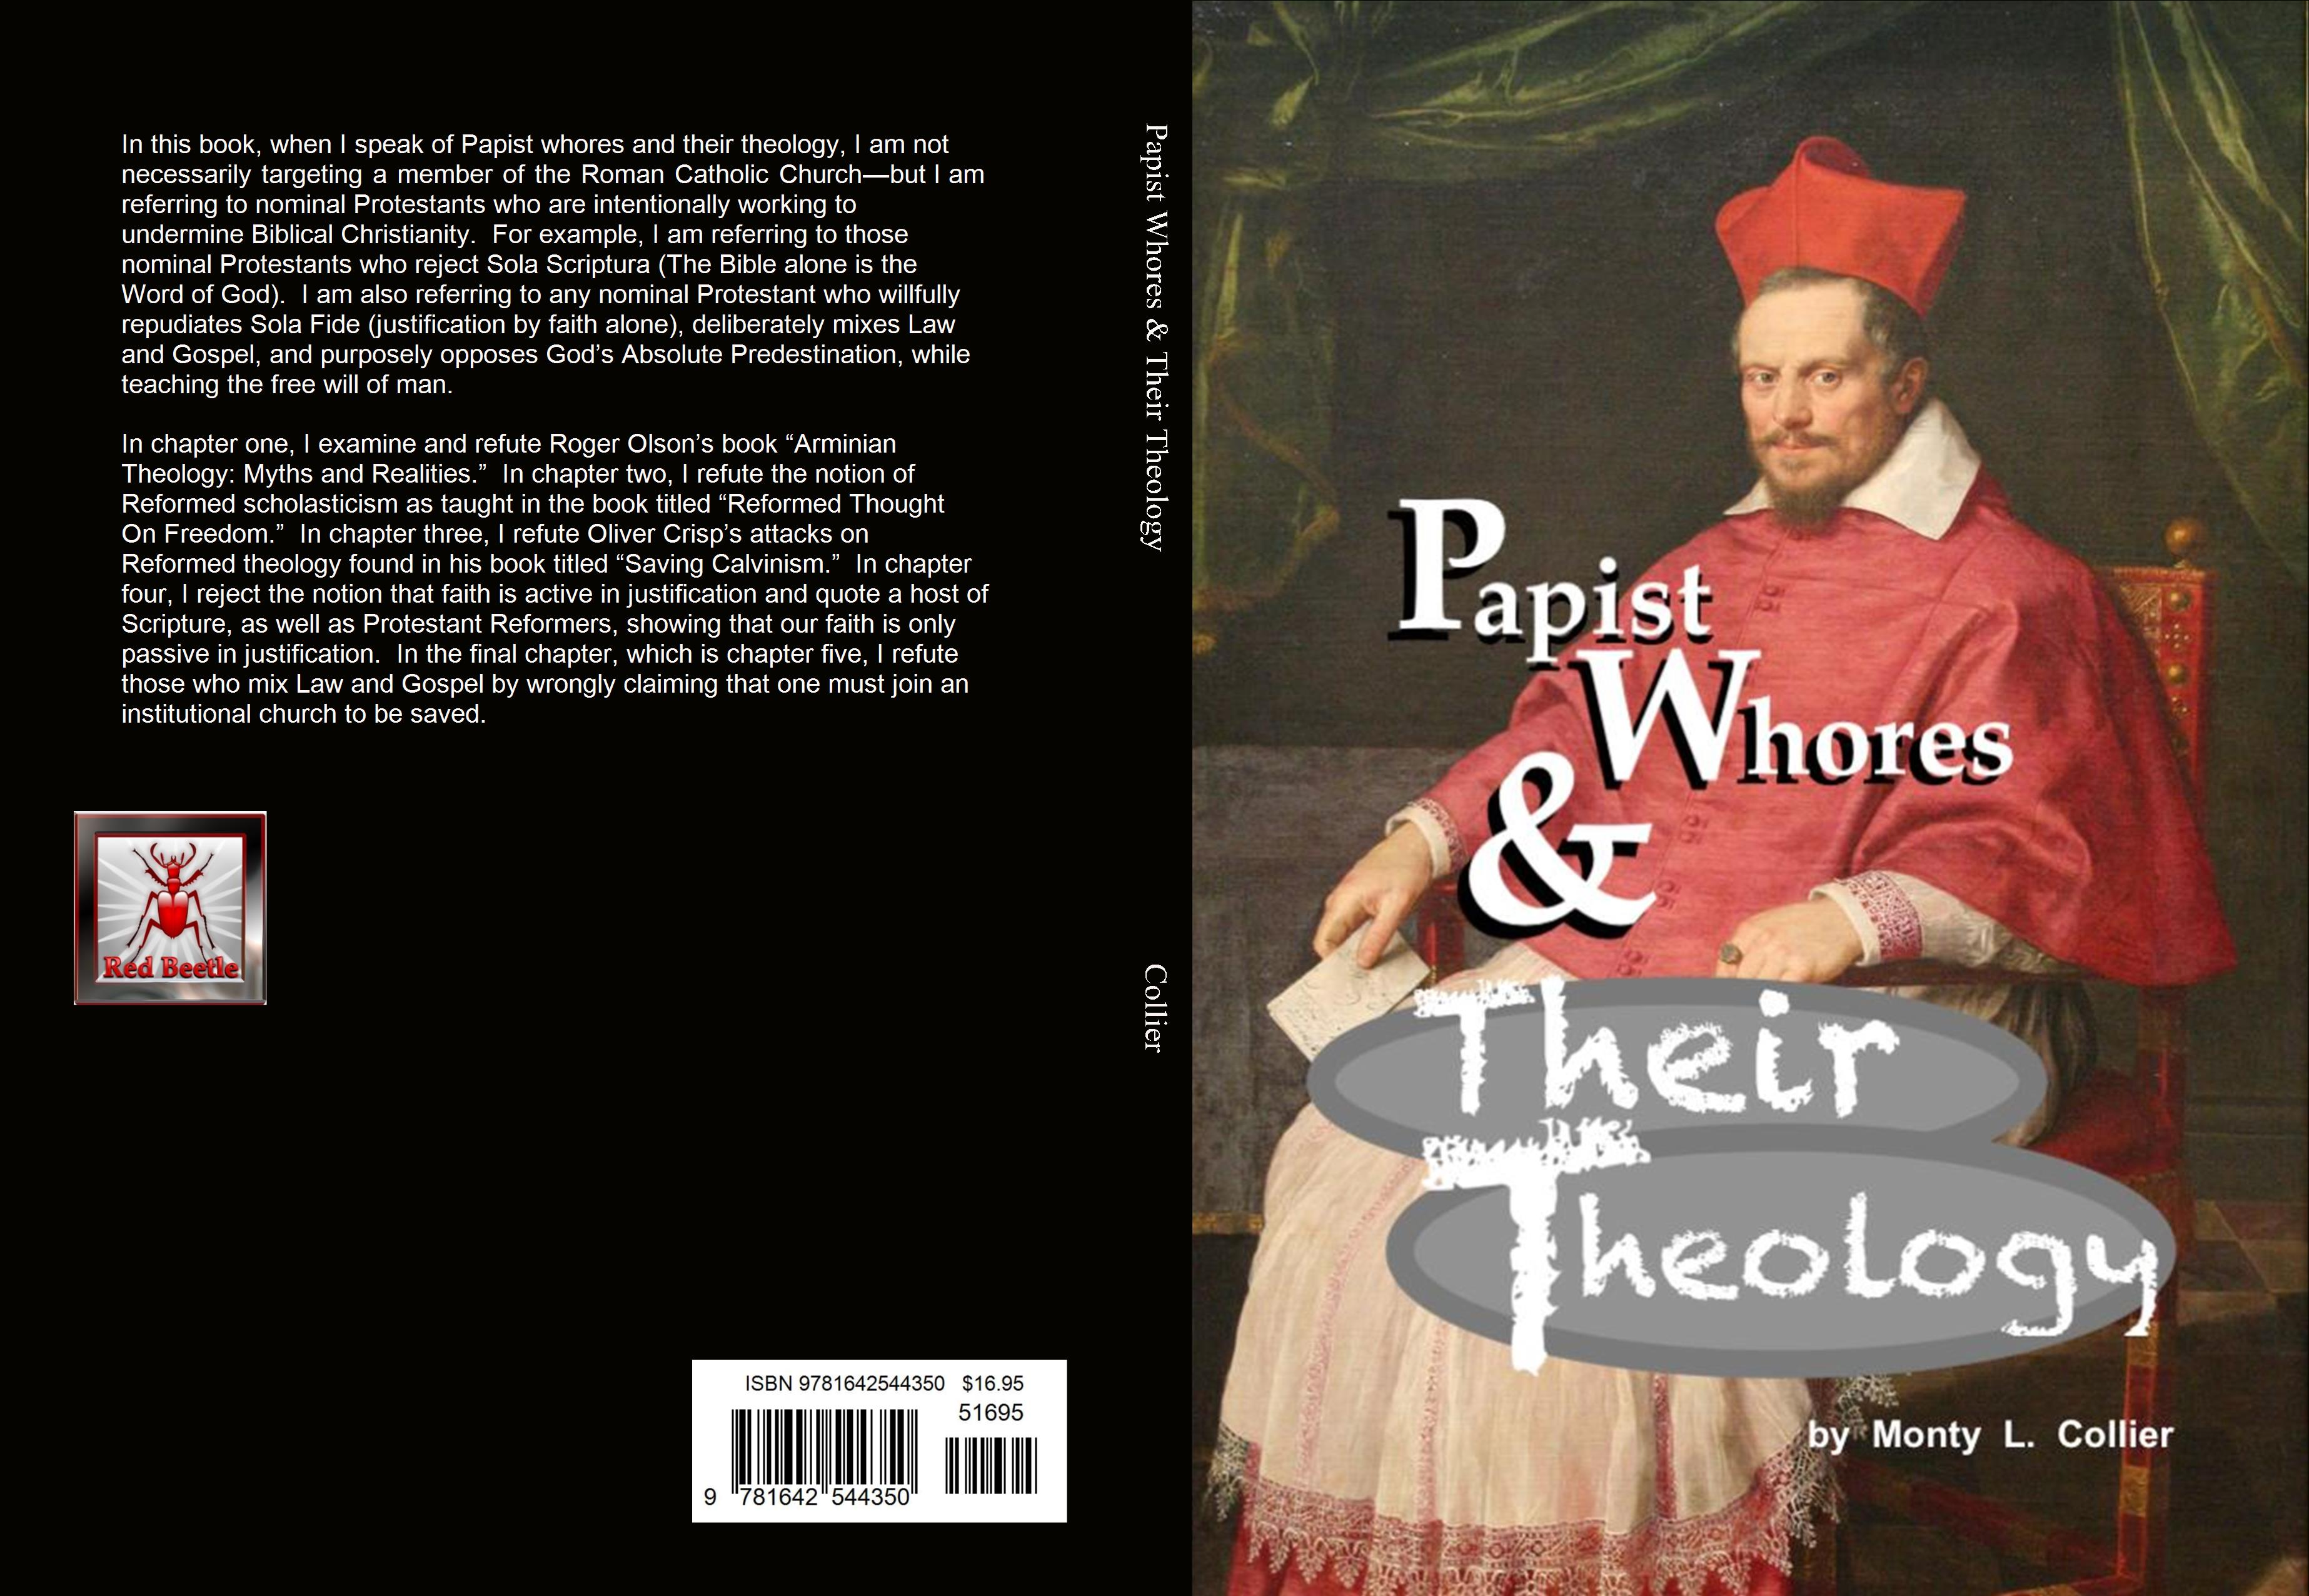 Papist Whores & Their Theology cover image